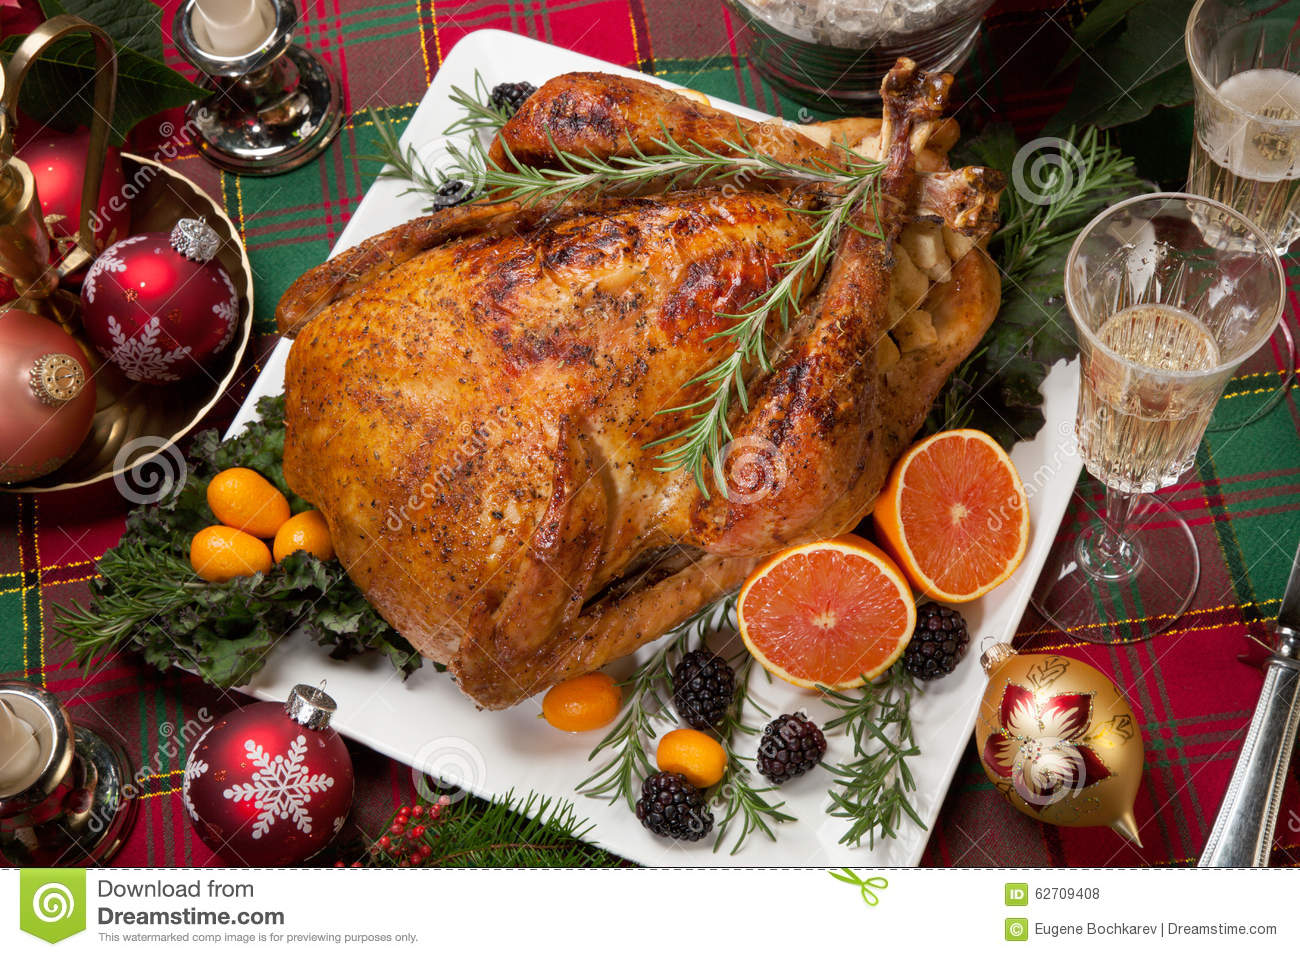 how to cook a turkey for christmas dinner